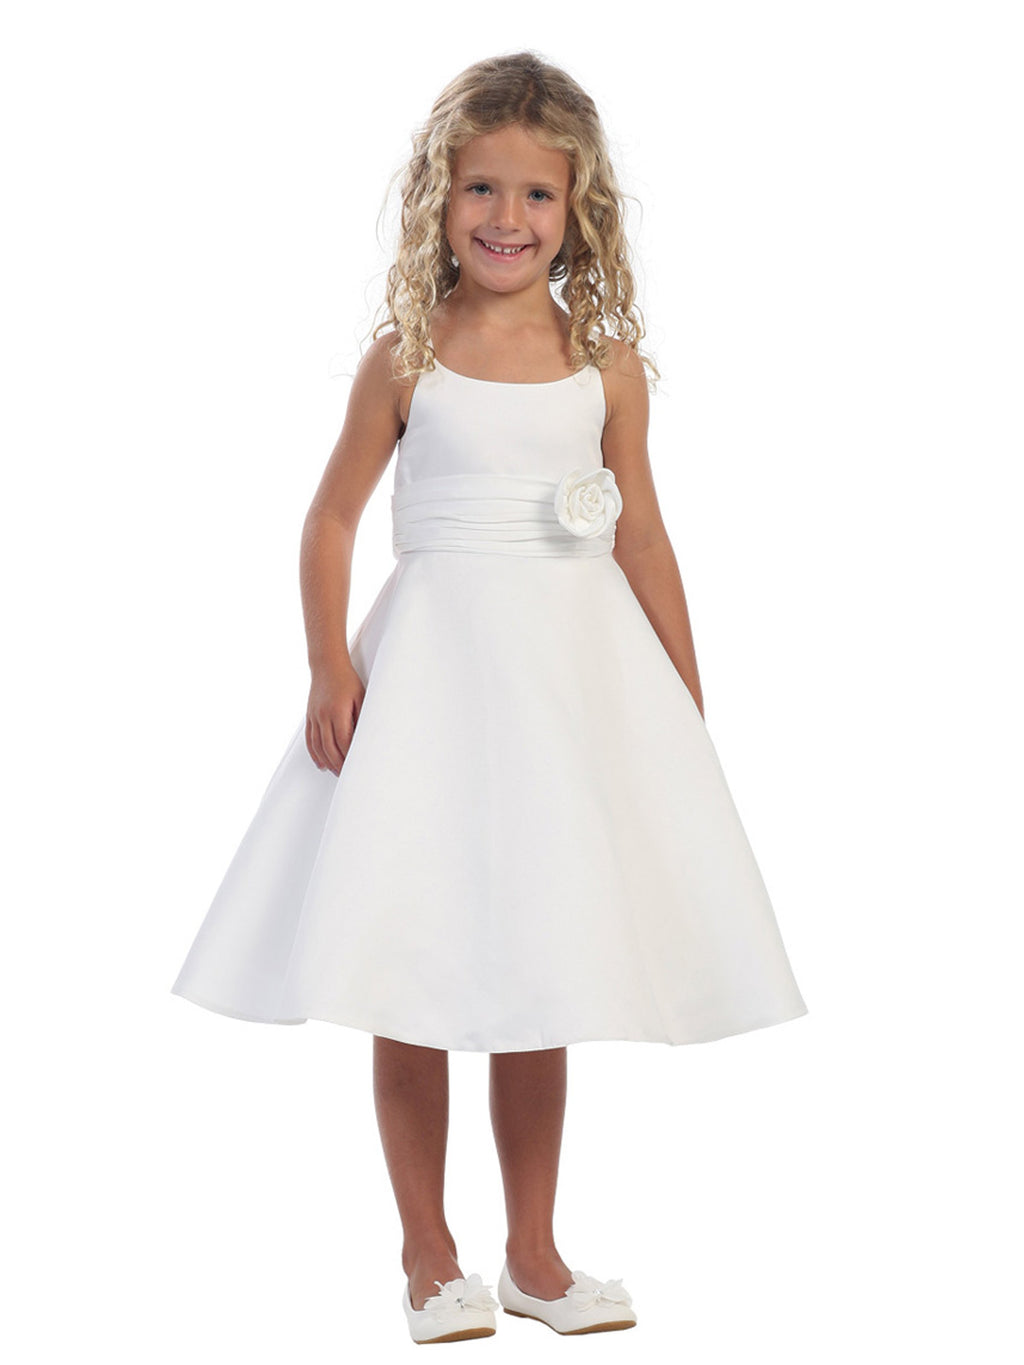 White Satin A-Line Dress with Satin Roughing Waist Accented by Satin Flower